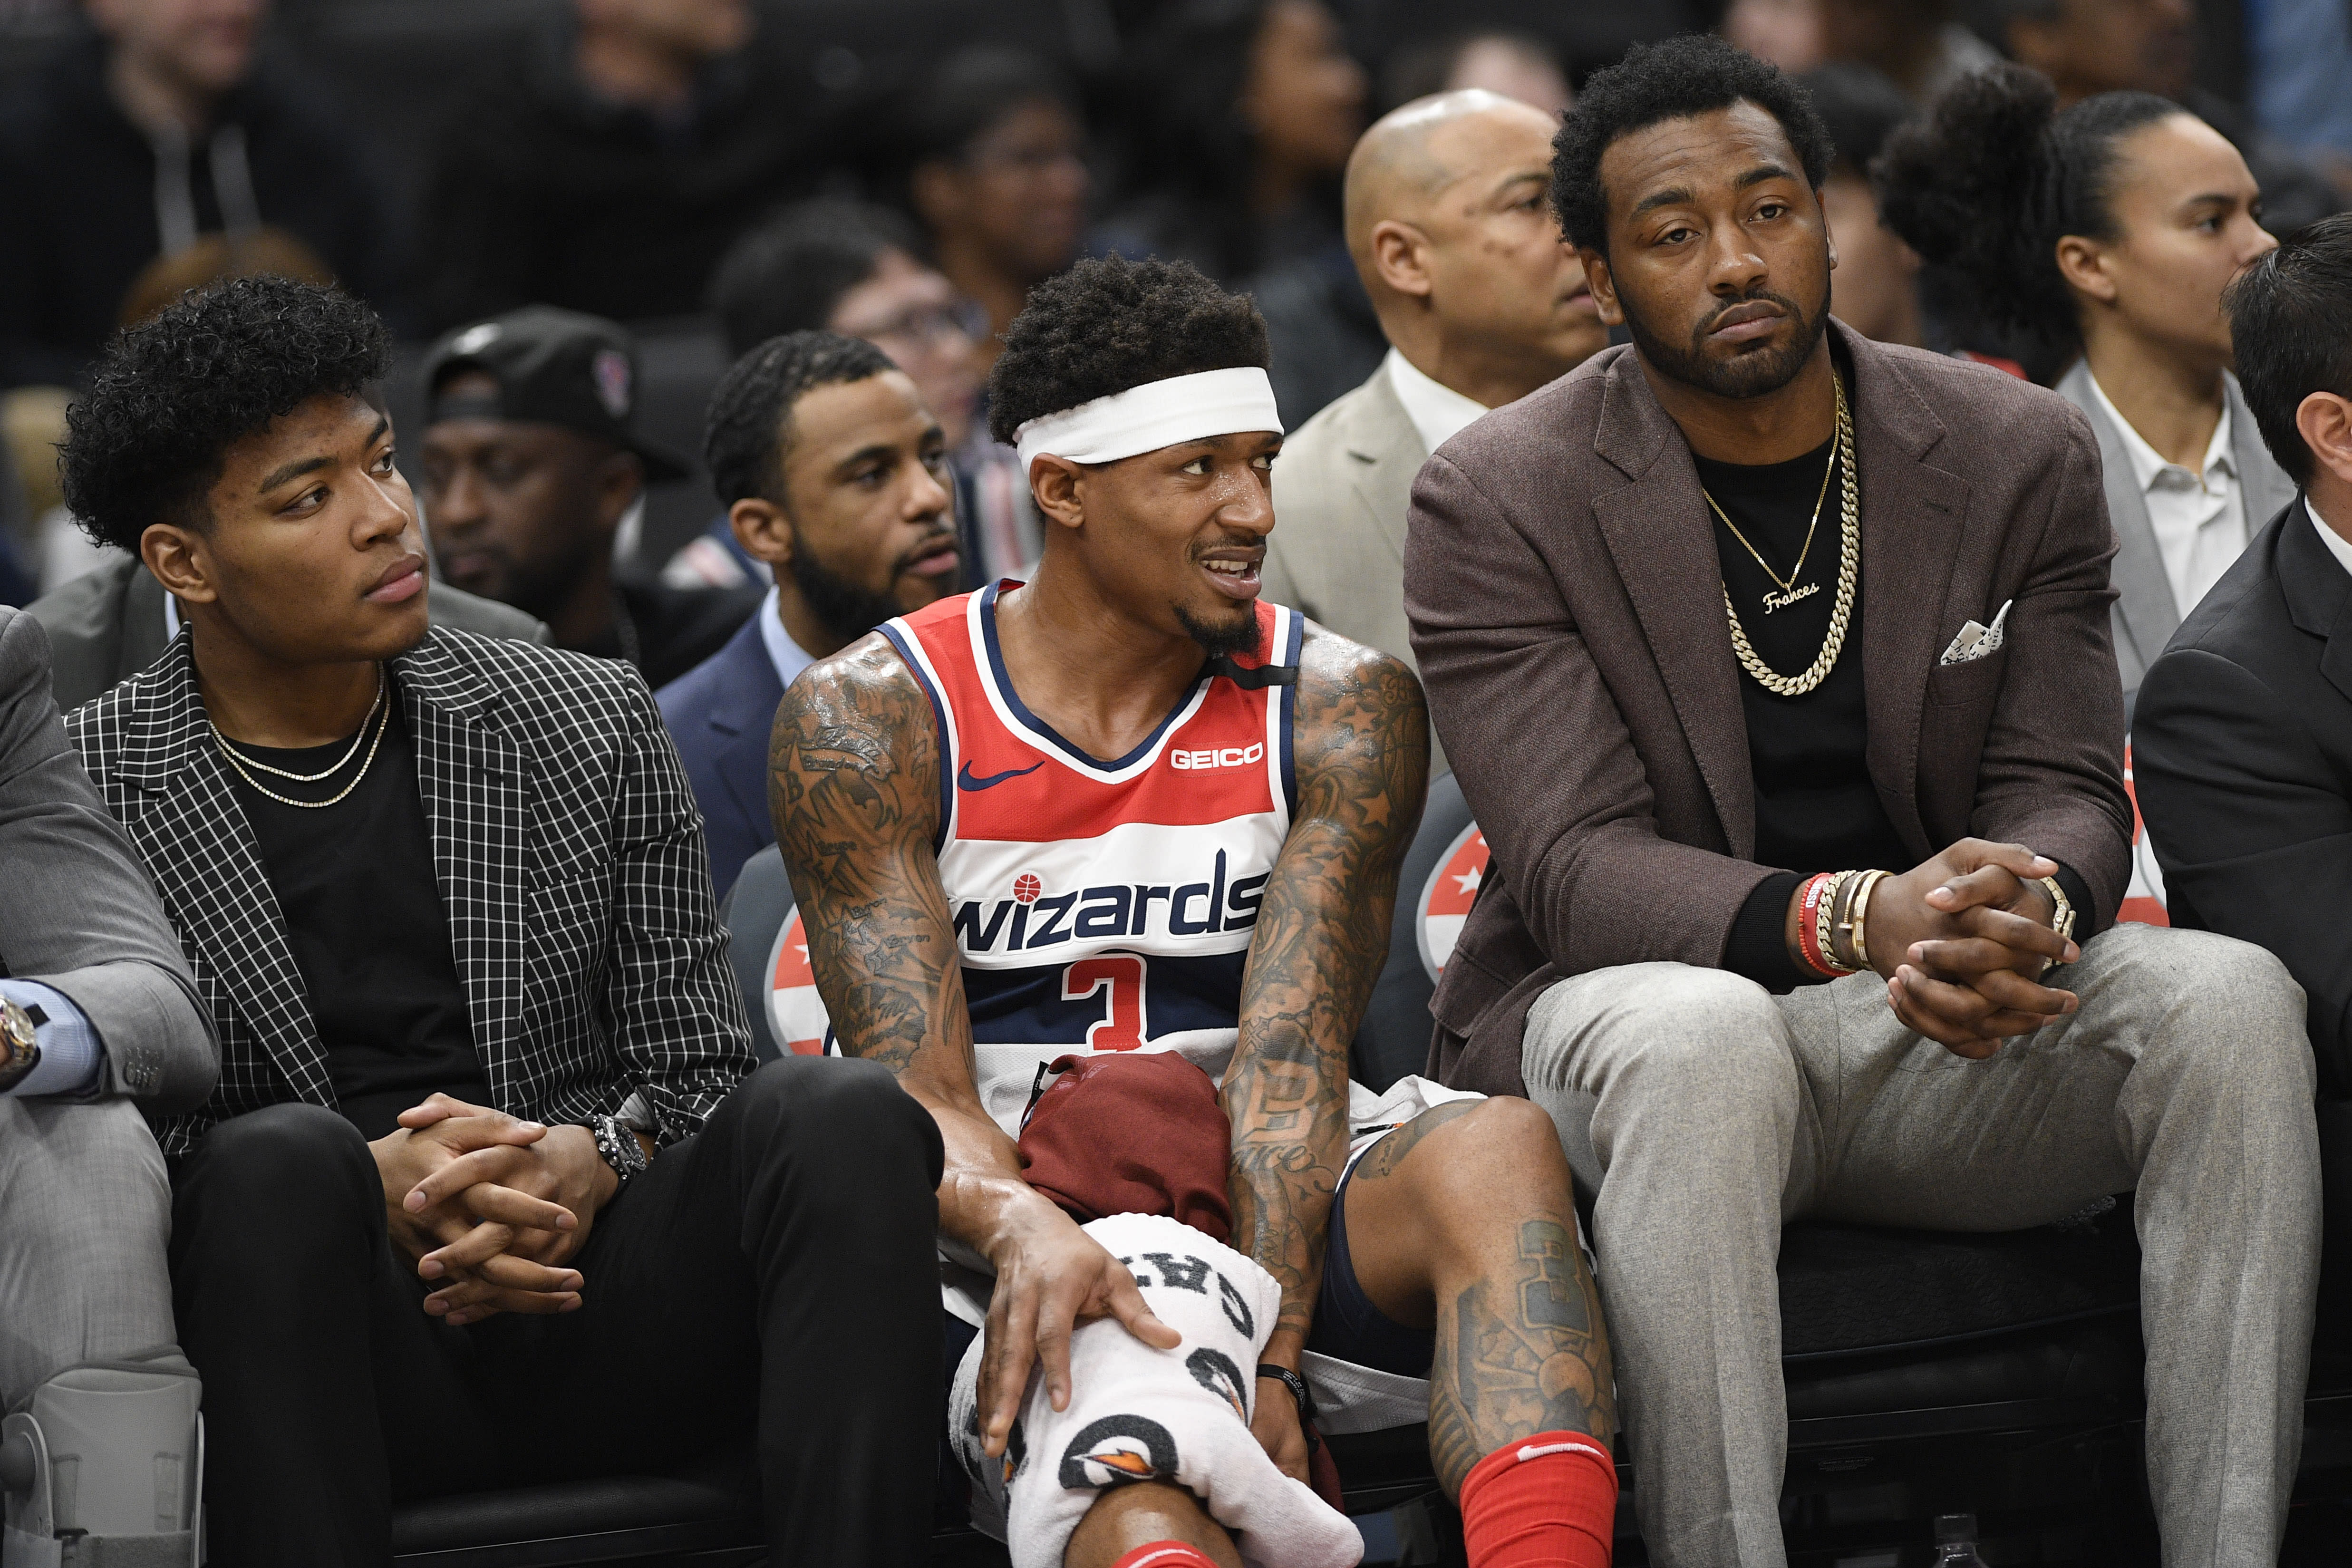 Washington Wizards forward Rui Hachimura, left, of Japan, guard Bradley Beal, center, and guard John Wall, right, watch from the bench during the first half of an NBA basketball game against the Utah Jazz, Sunday, Jan. 12, 2020, in Washington. (AP Photo/Nick Wass)